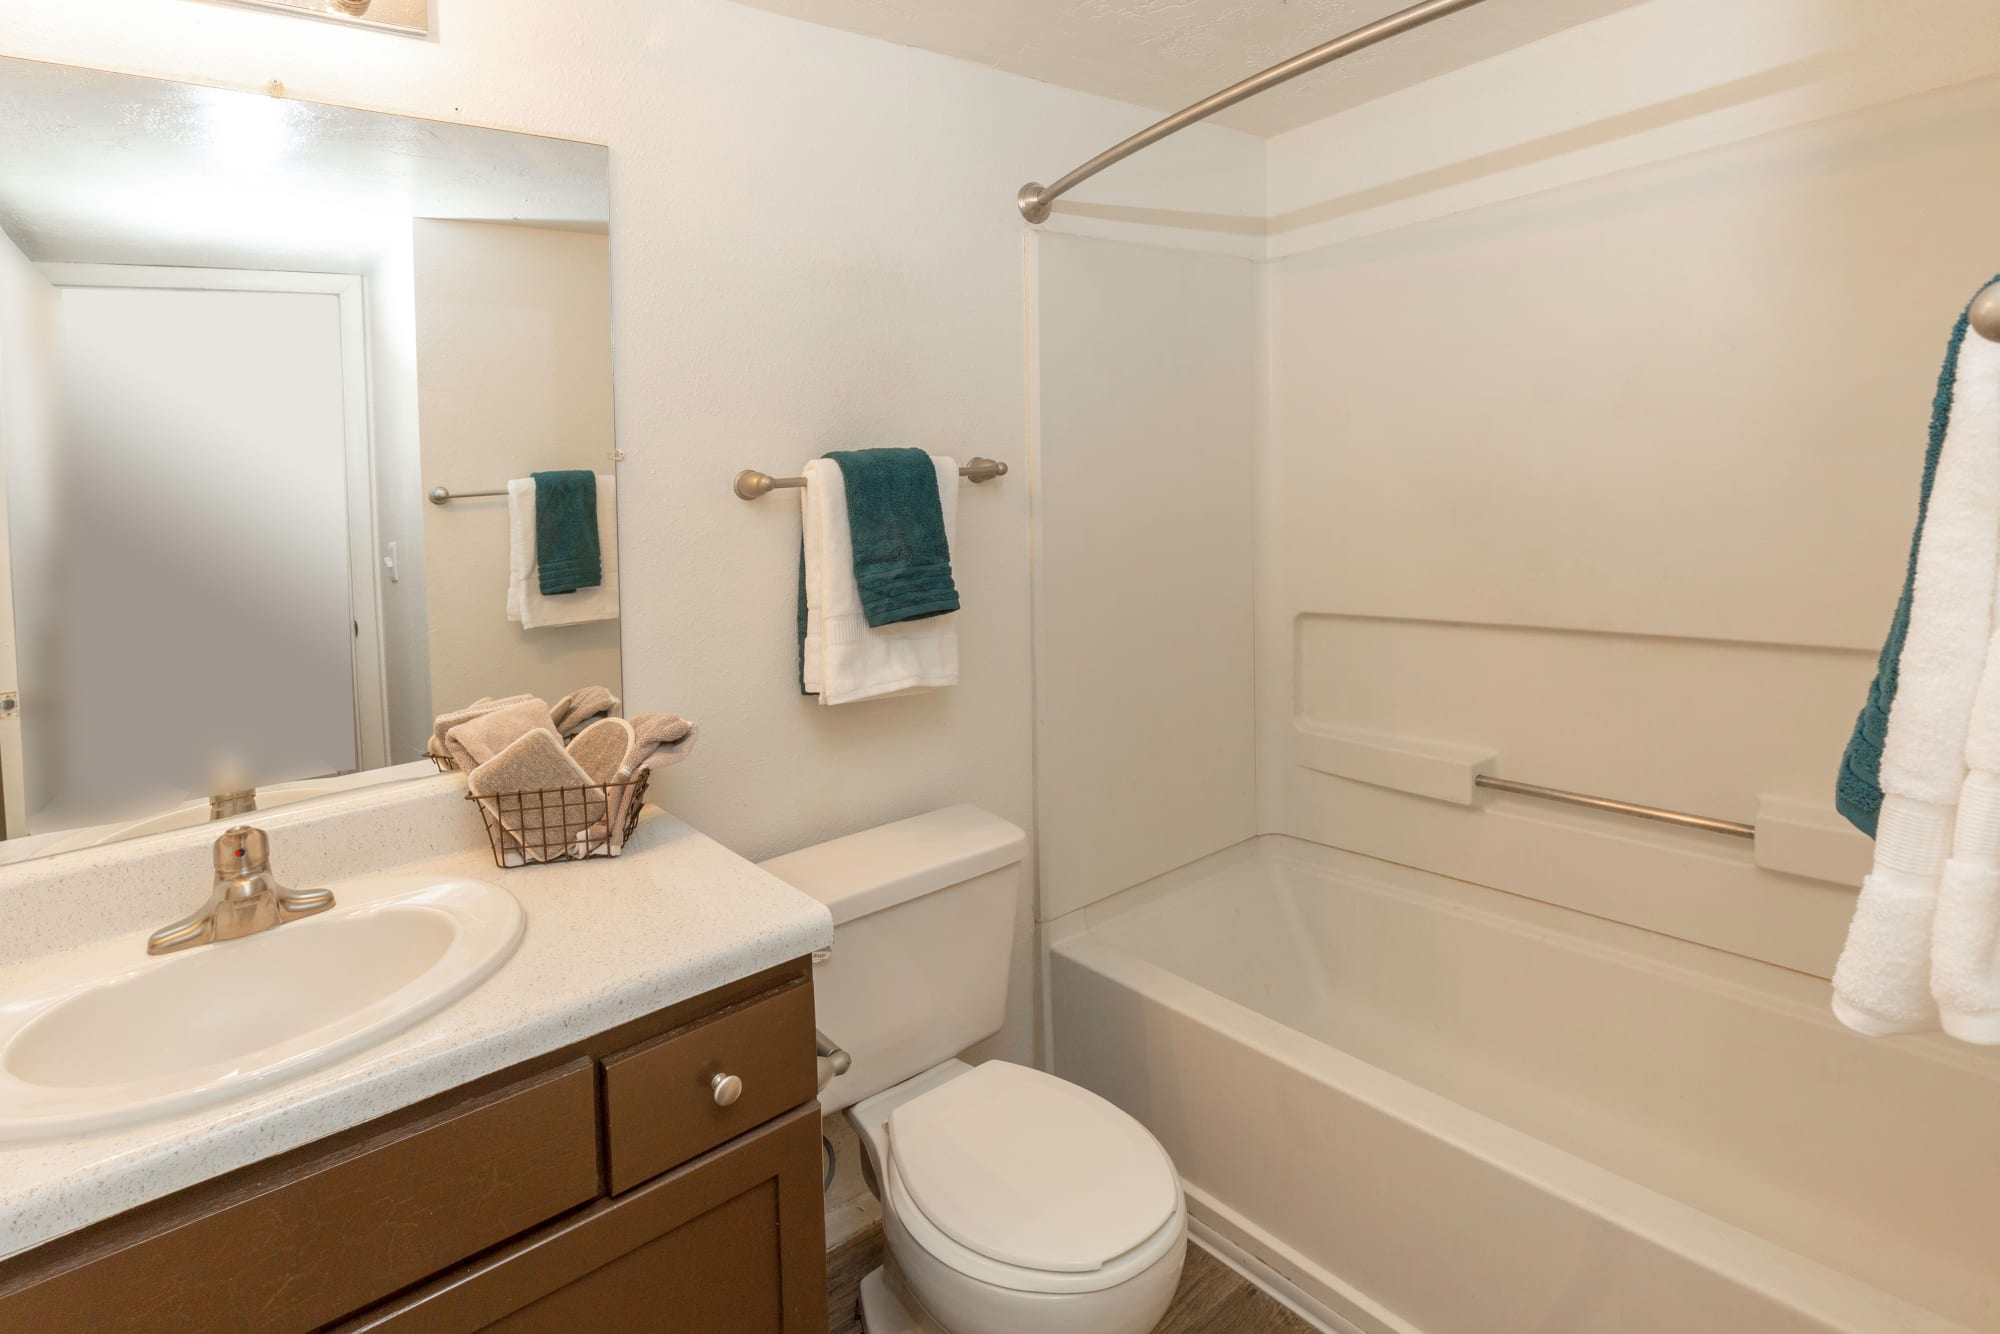 Renovated bathroom with brown cabinets and a tub at Windgate Apartments in Bountiful, Utah